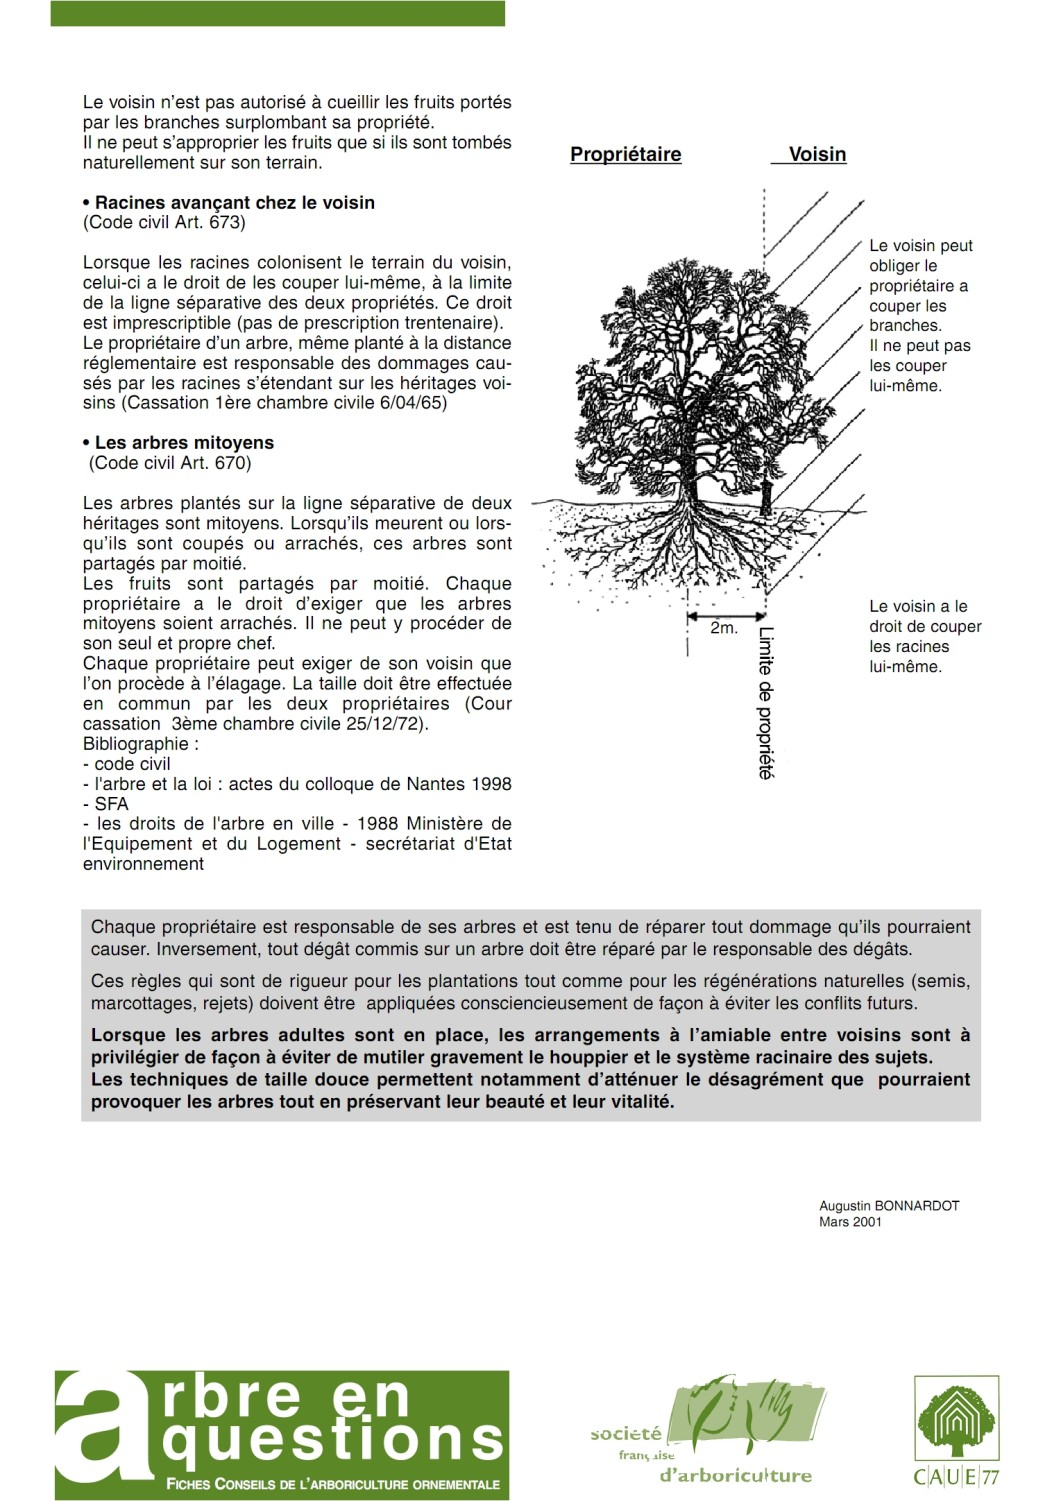 Droits de l arbre krapo arboricole - Cloture entre voisin code civil ...